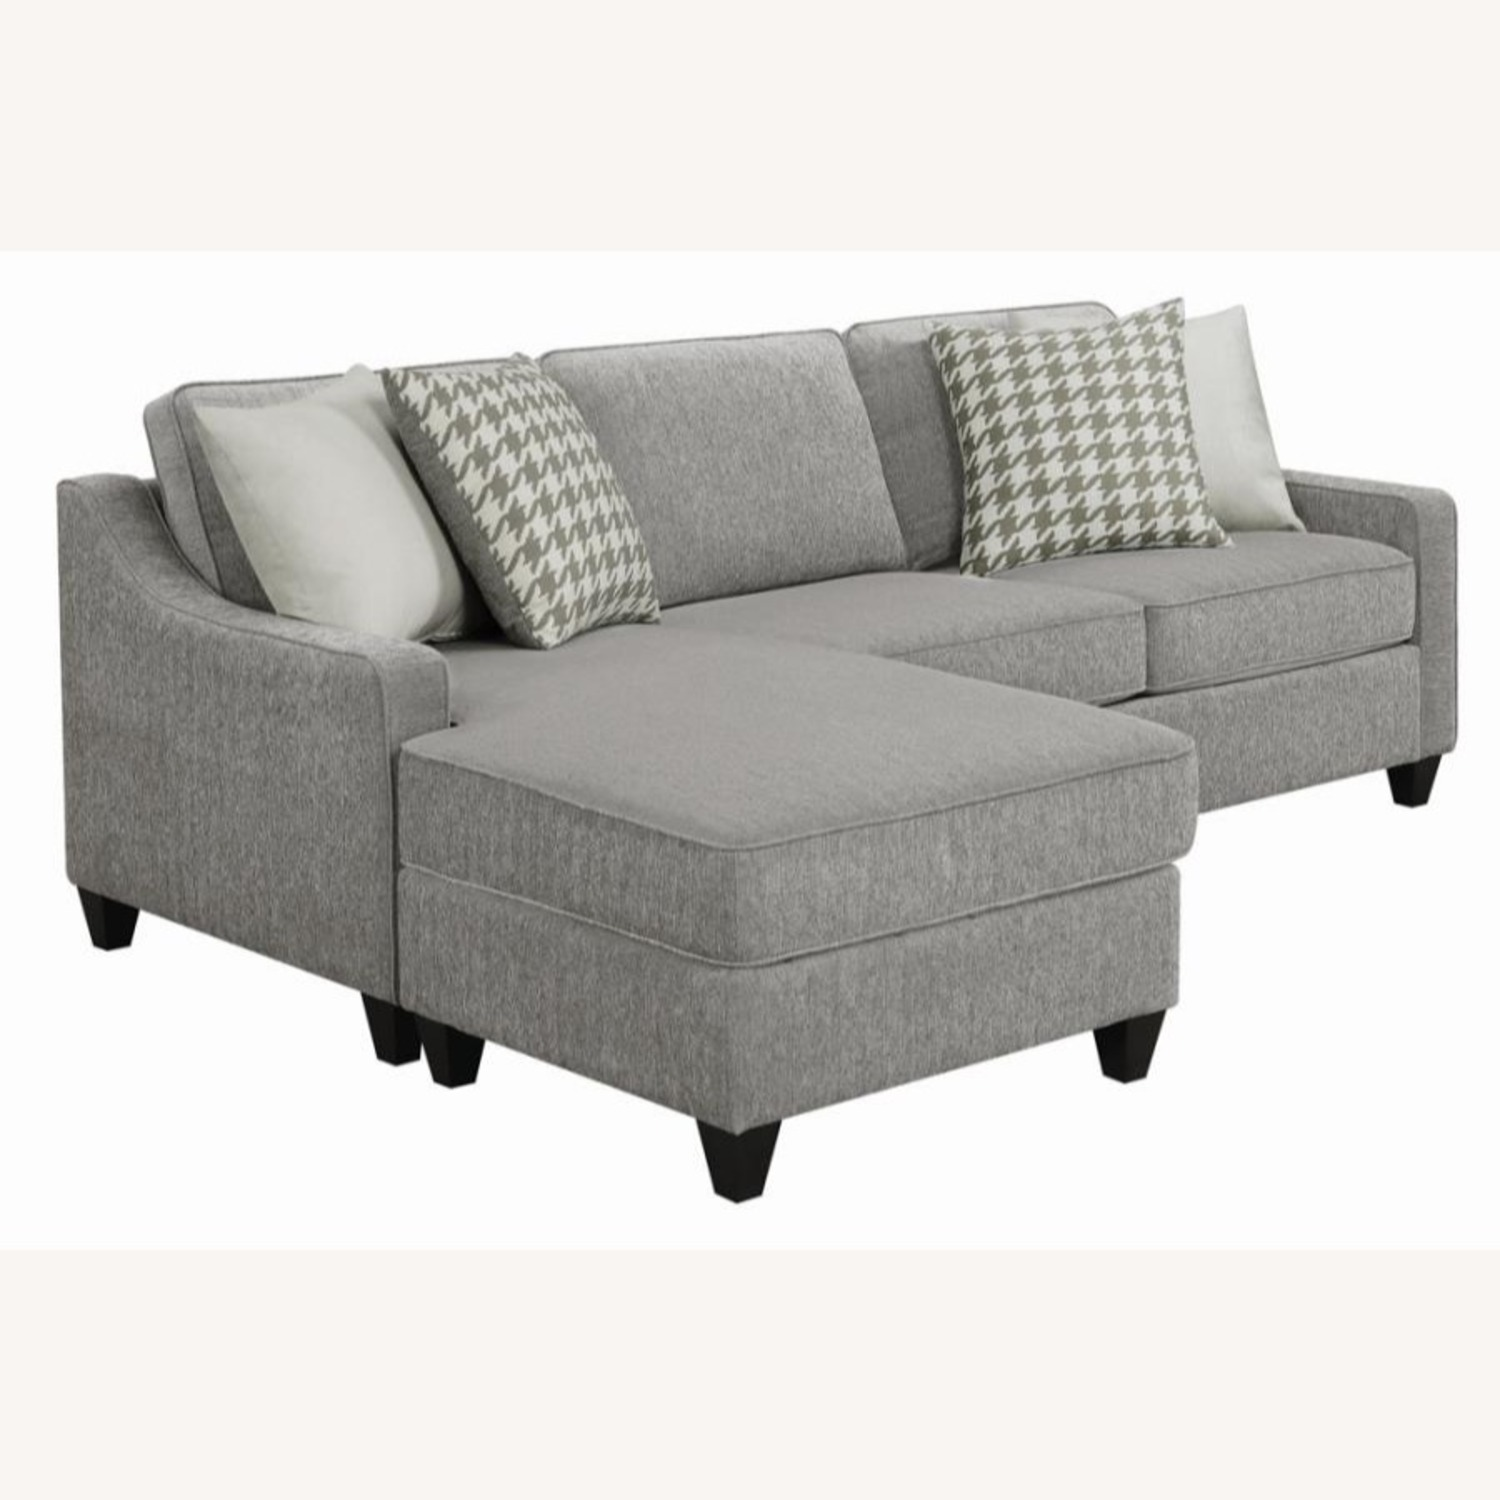 Sectional In Charcoal Chevron Dobby Upholstery - image-2